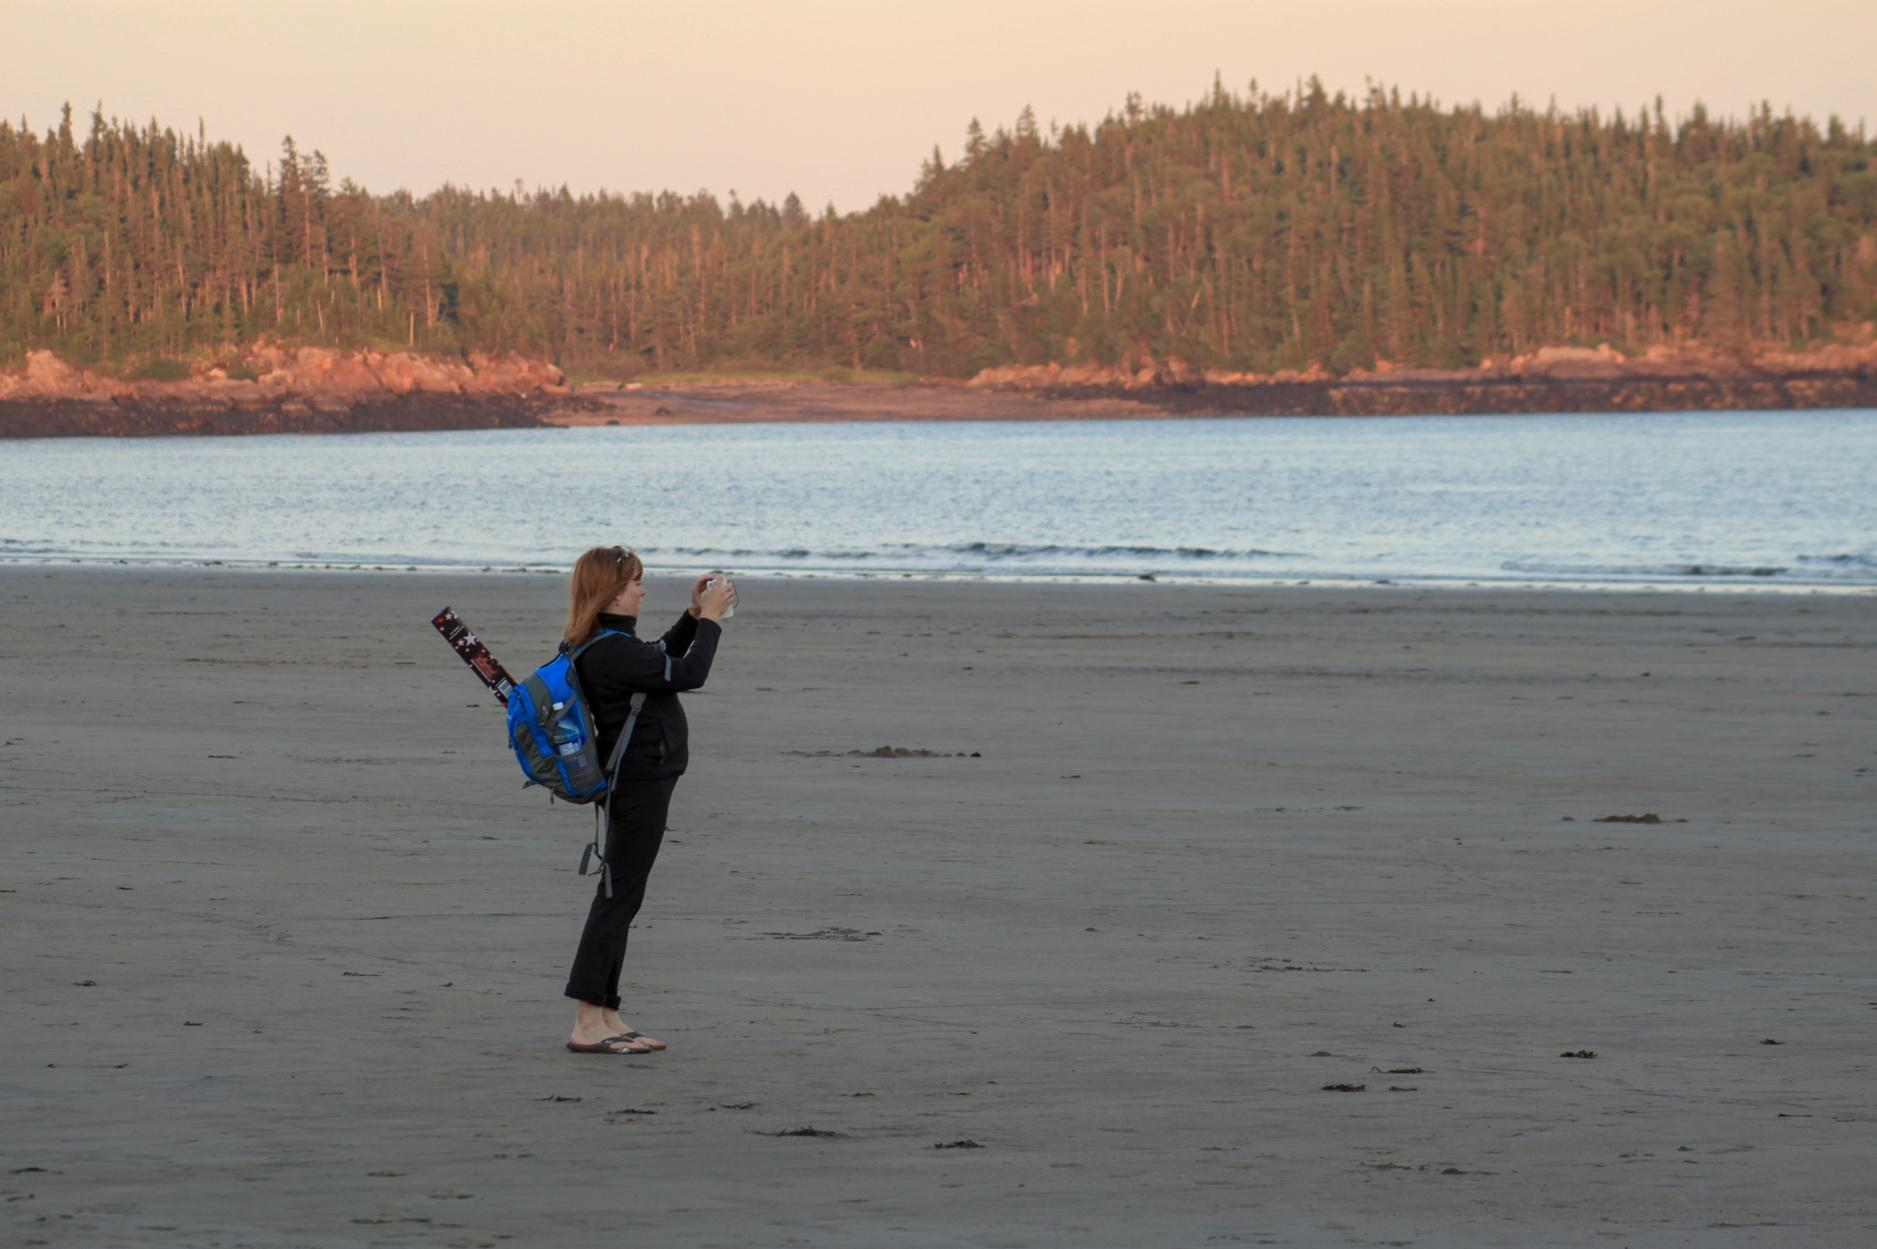 A person holding a surfboard on a beachDescription automatically generated with medium confidence